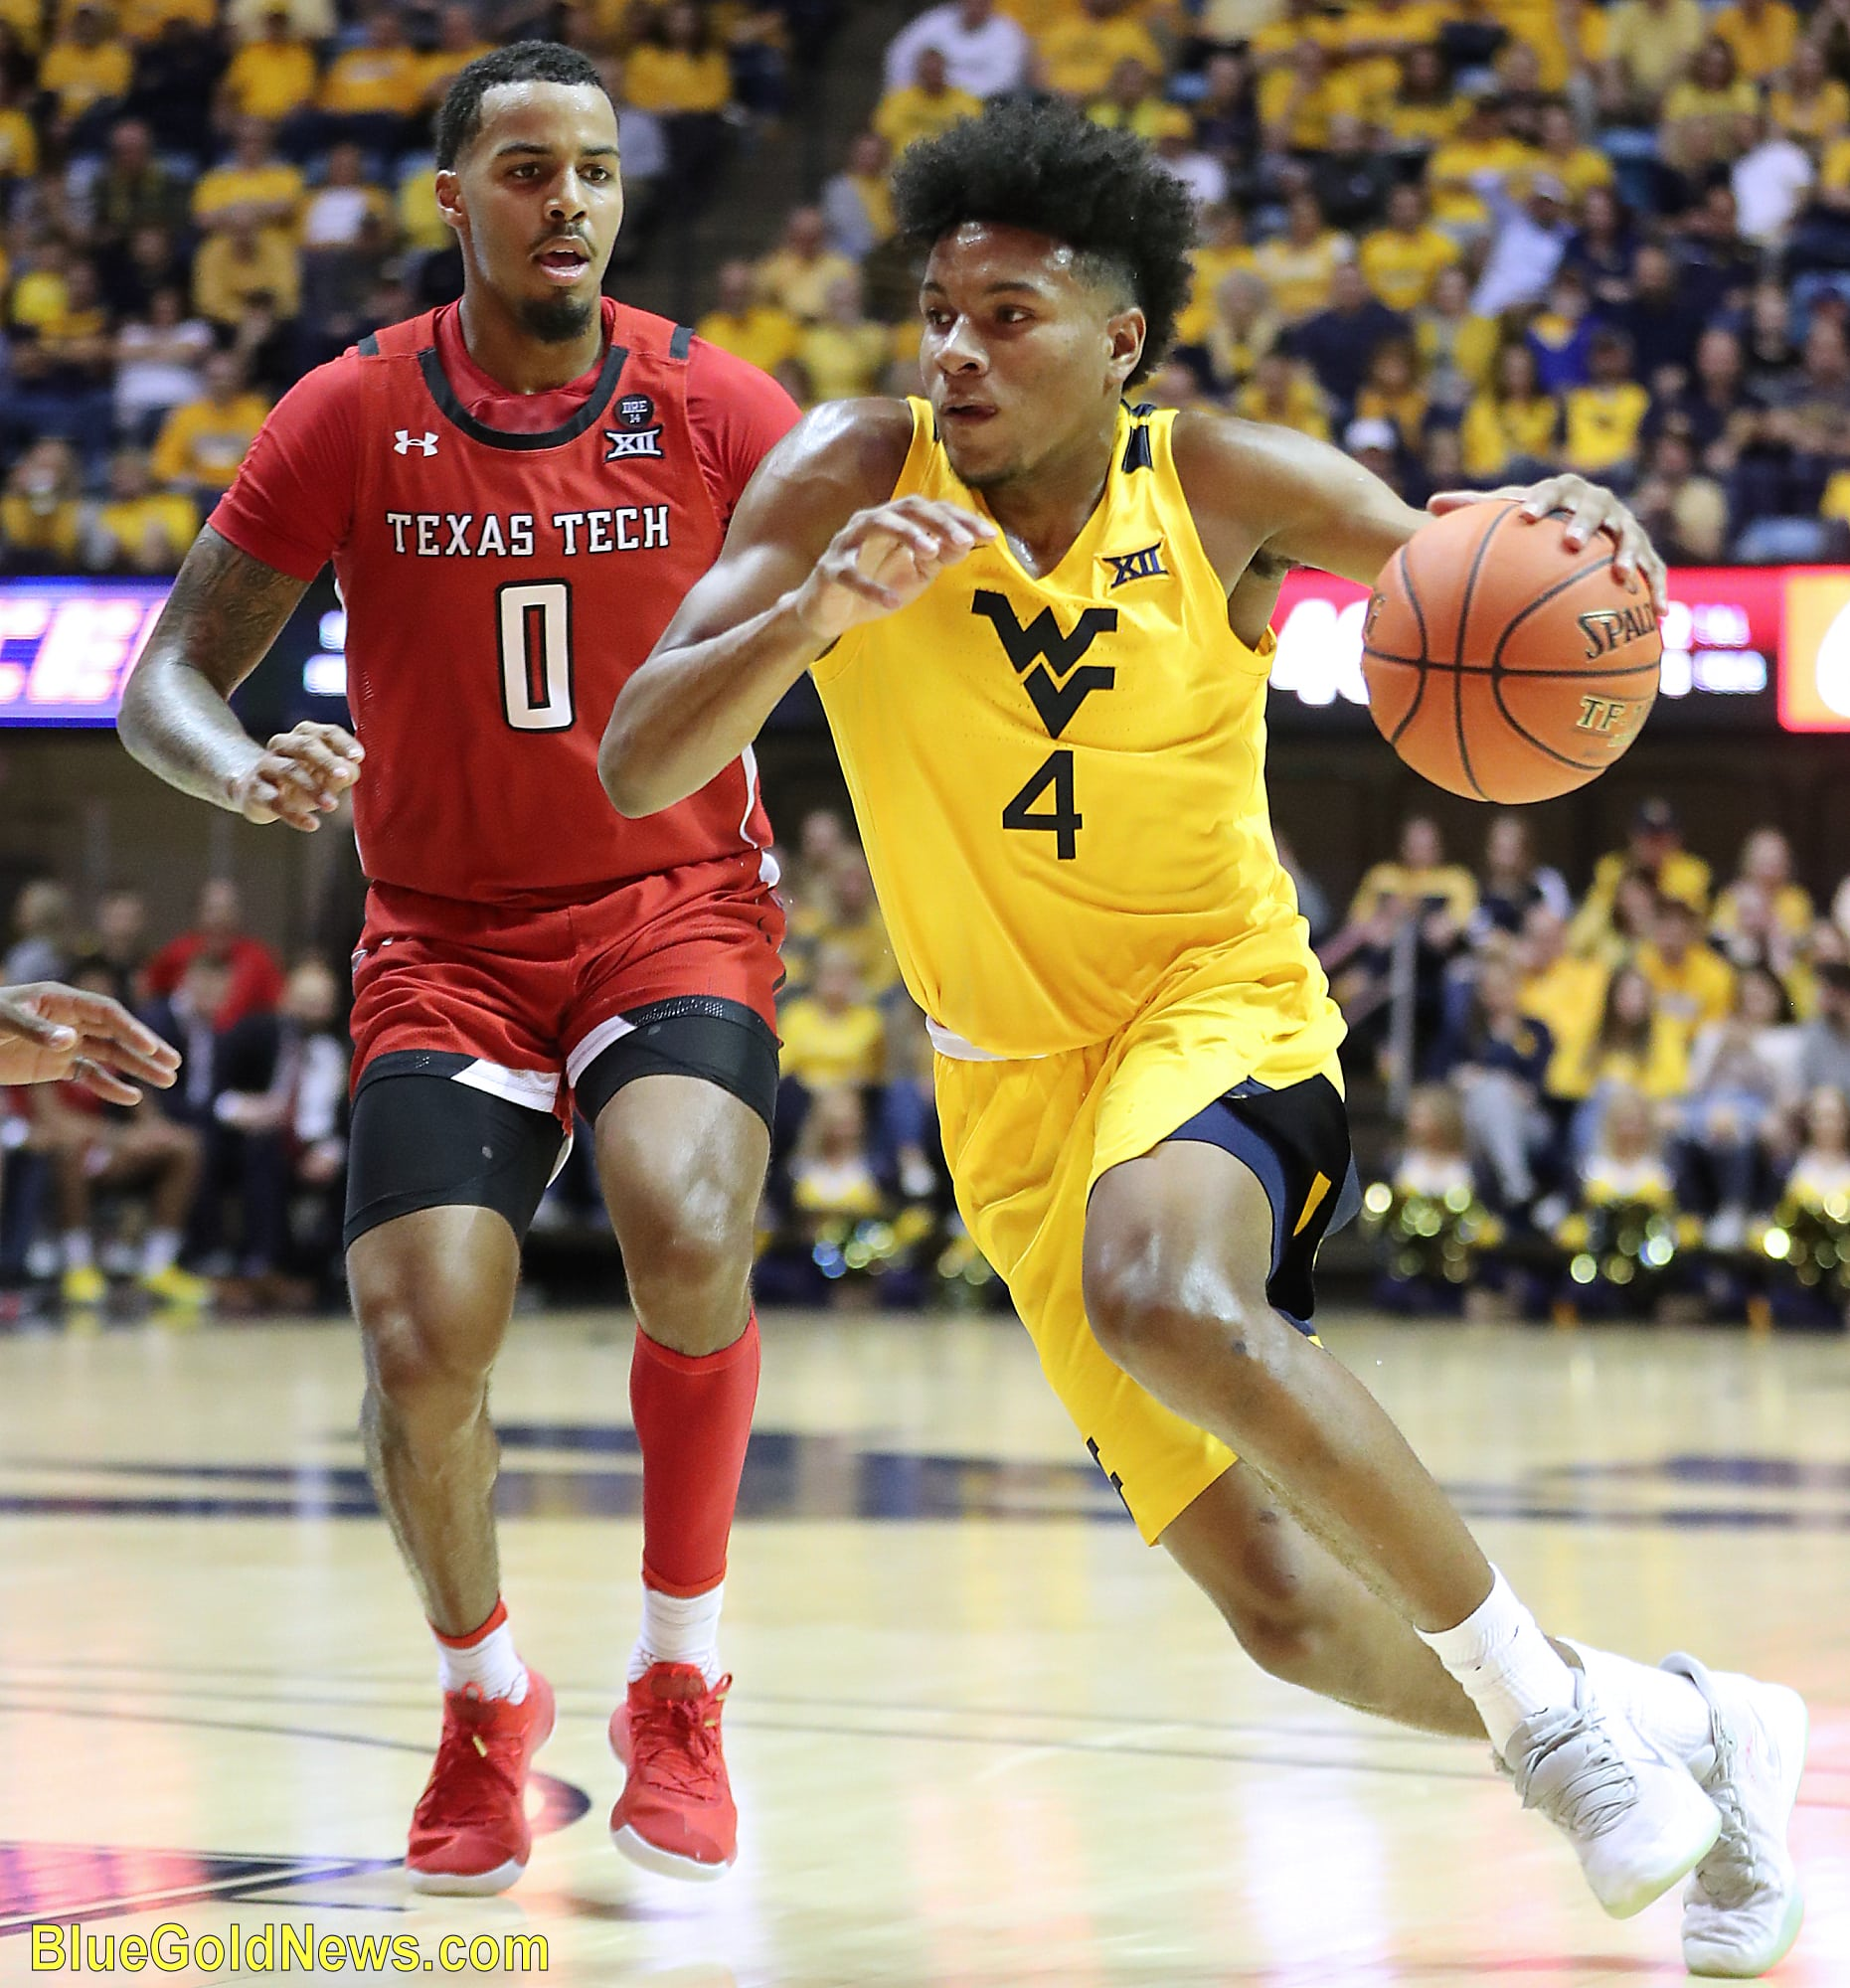 Mountaineers 4 comes in for the layup while texas Tech just looks